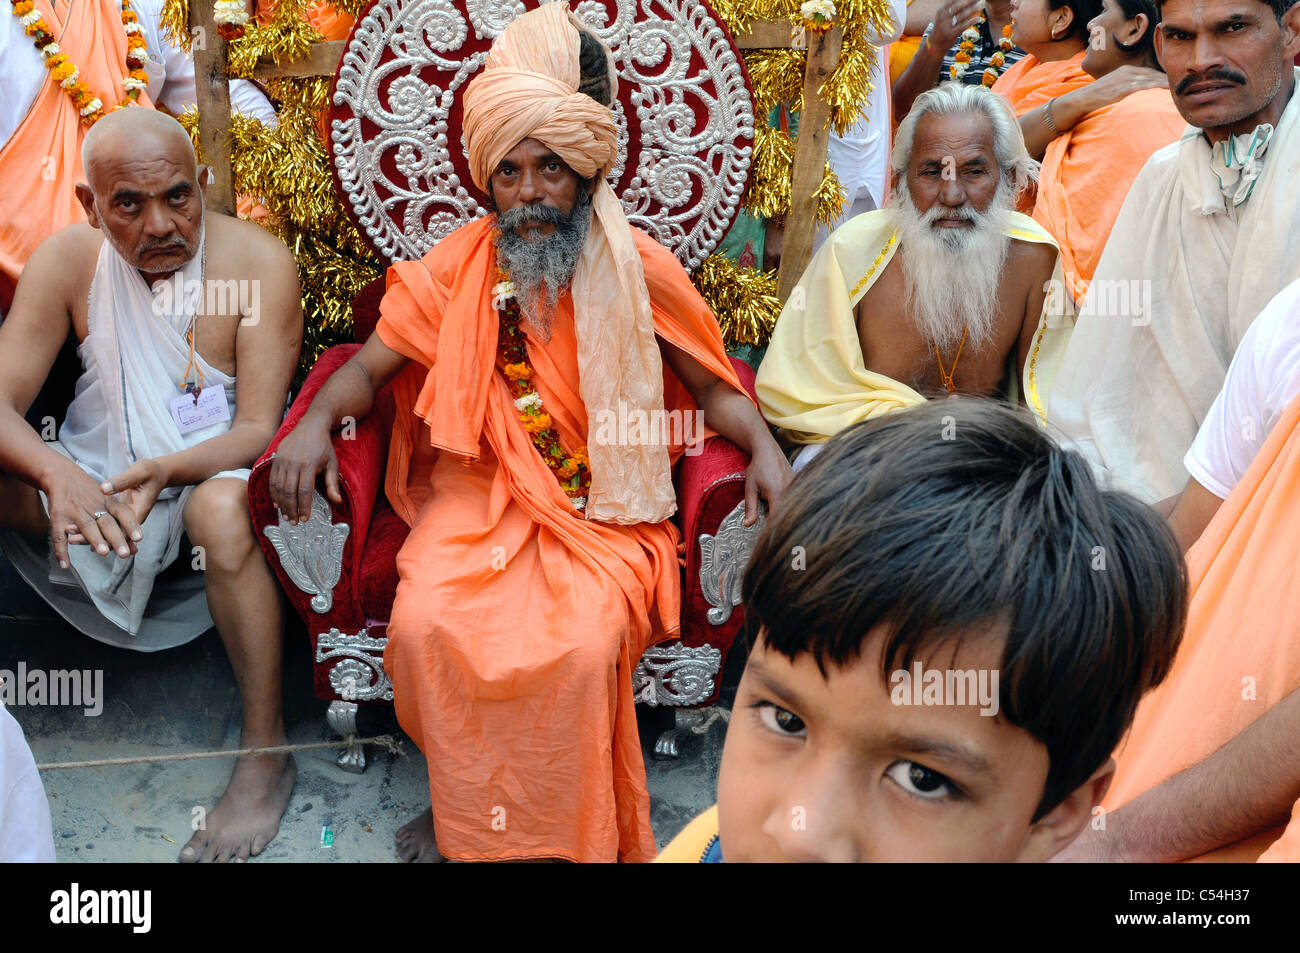 A sadhu (Hindu holy man) at the Kumbh Mela festival in India. - Stock Image